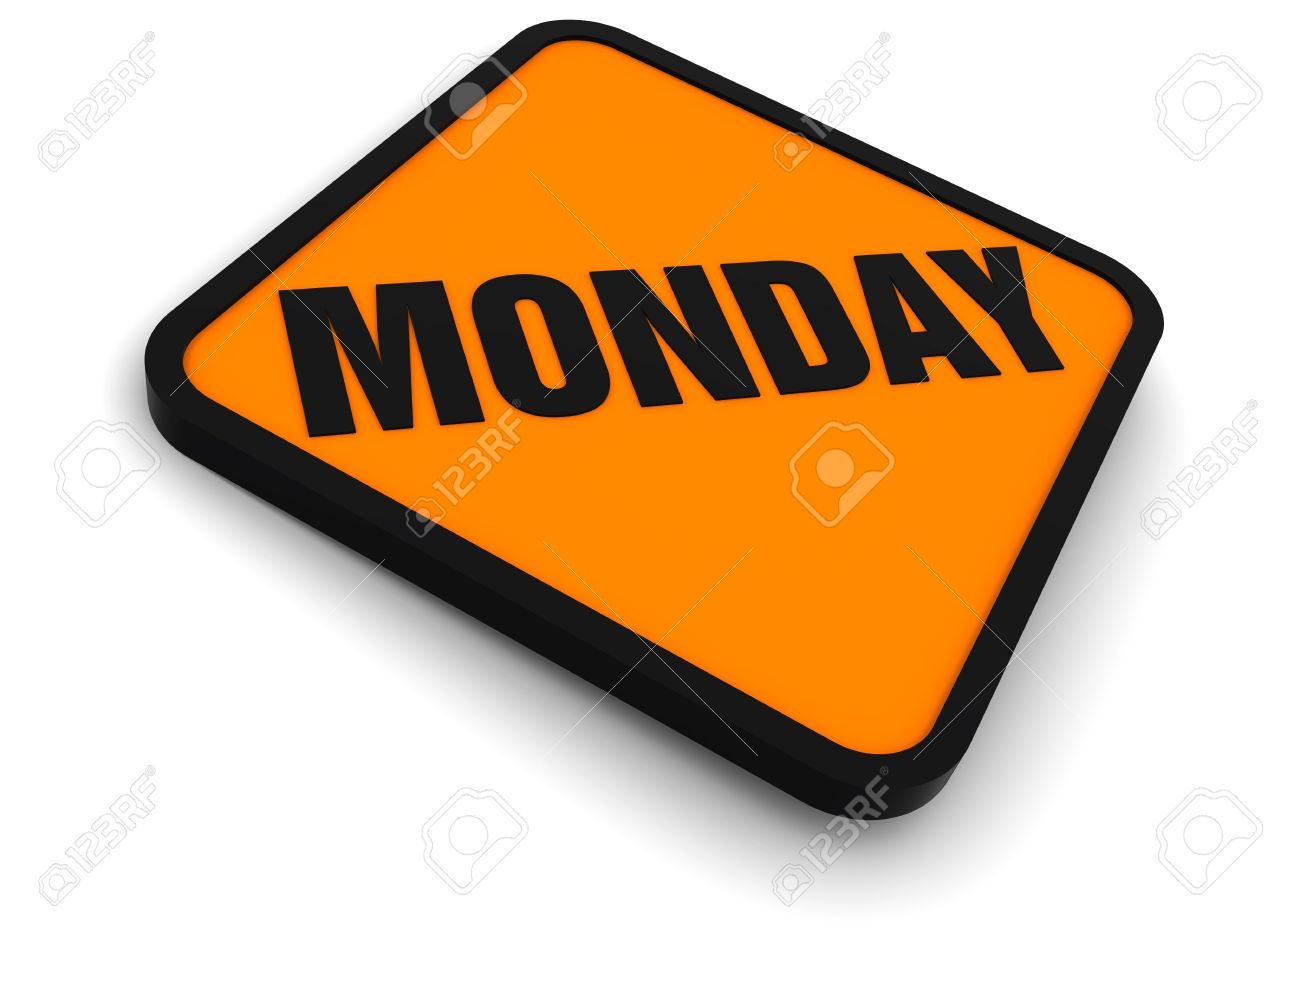 Monday Word Sign for the word monday  days